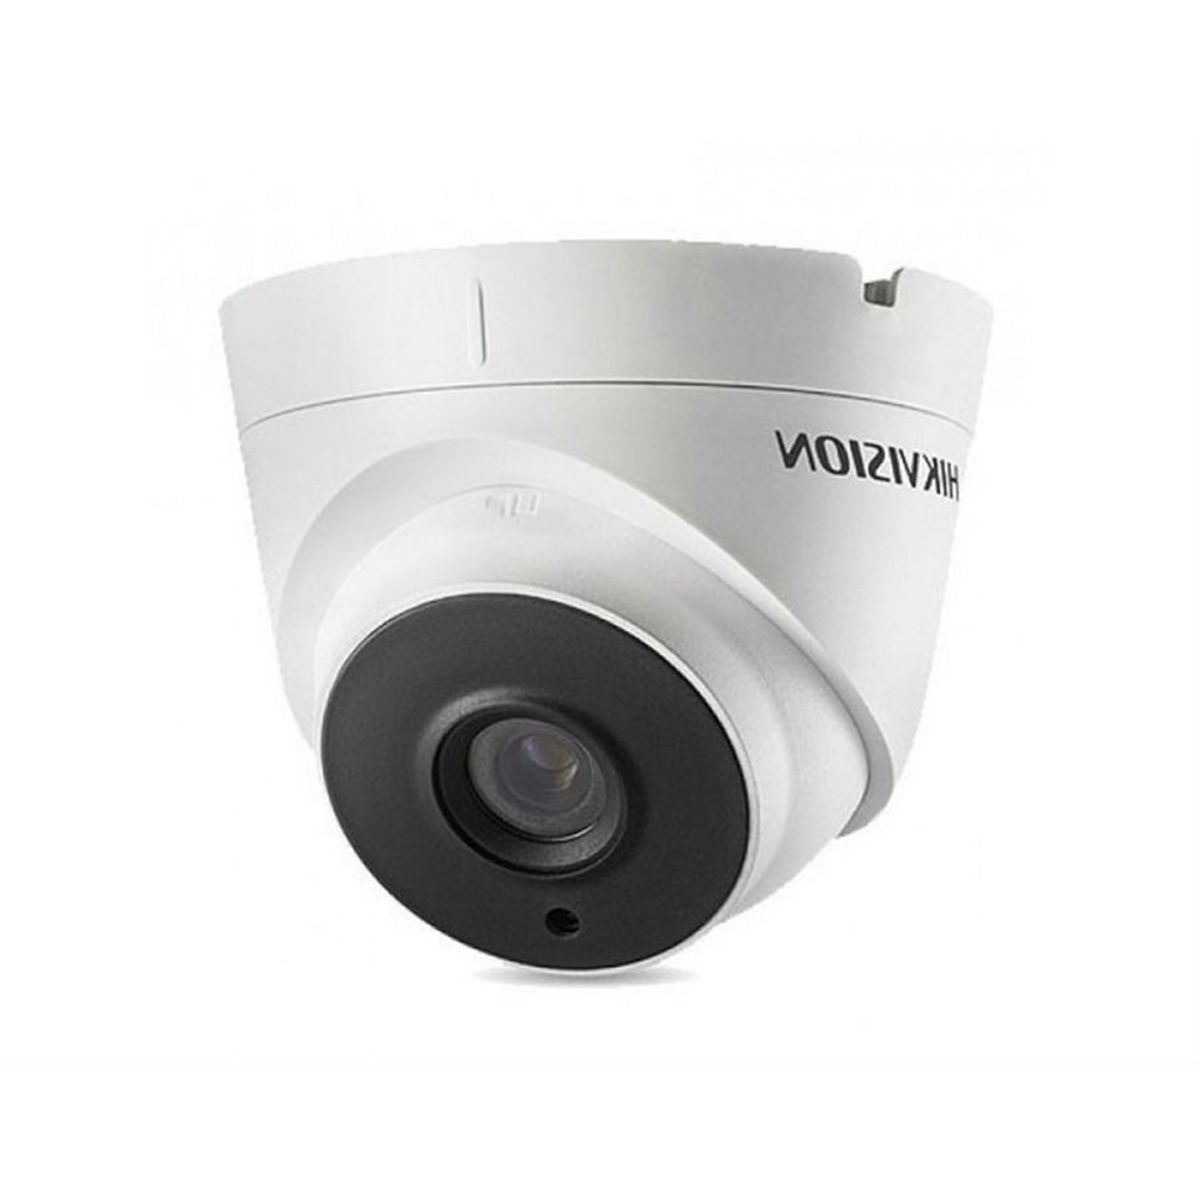 Cámara Hikvision Turbo HD Tipo Domo DS-2CE56F7T-IT1